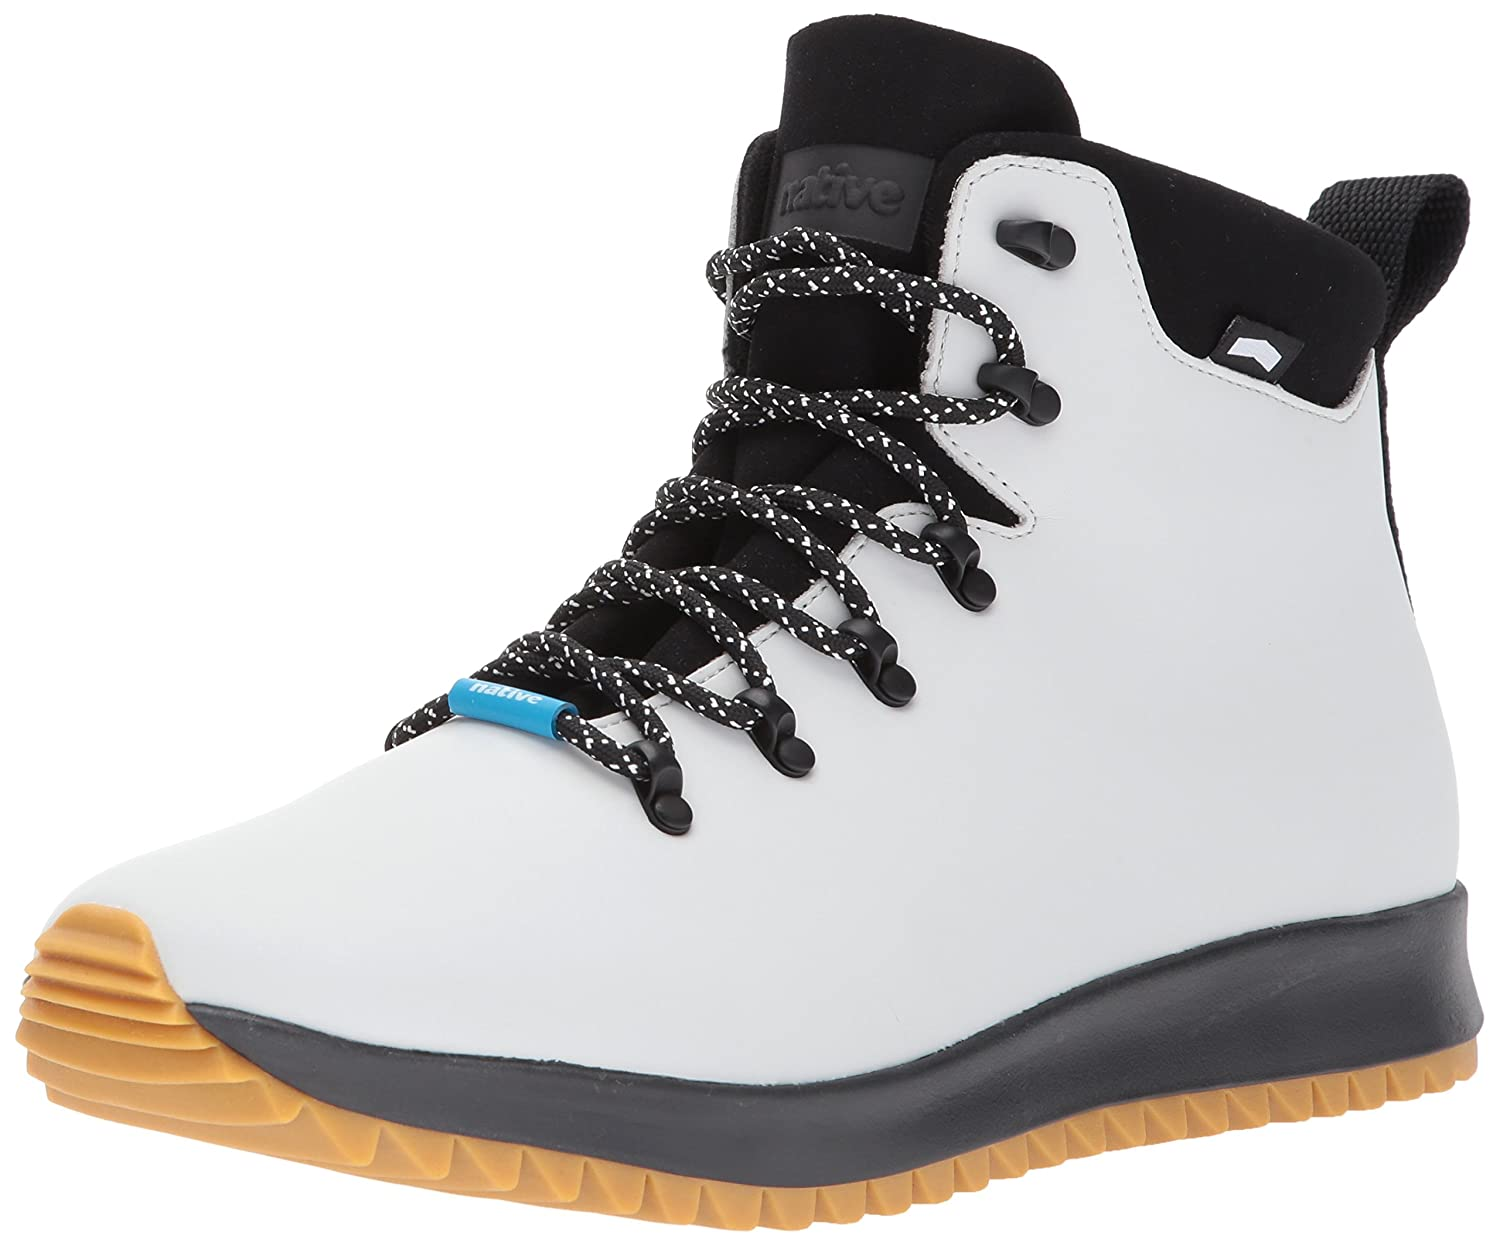 Native Native Native AP Apex CT Mist grau CT Jiffy schwarz NAT Rubber Unisex High-Top Schuhe (Mist grau CT Jiffy schwarz NAT Rubber) 045052